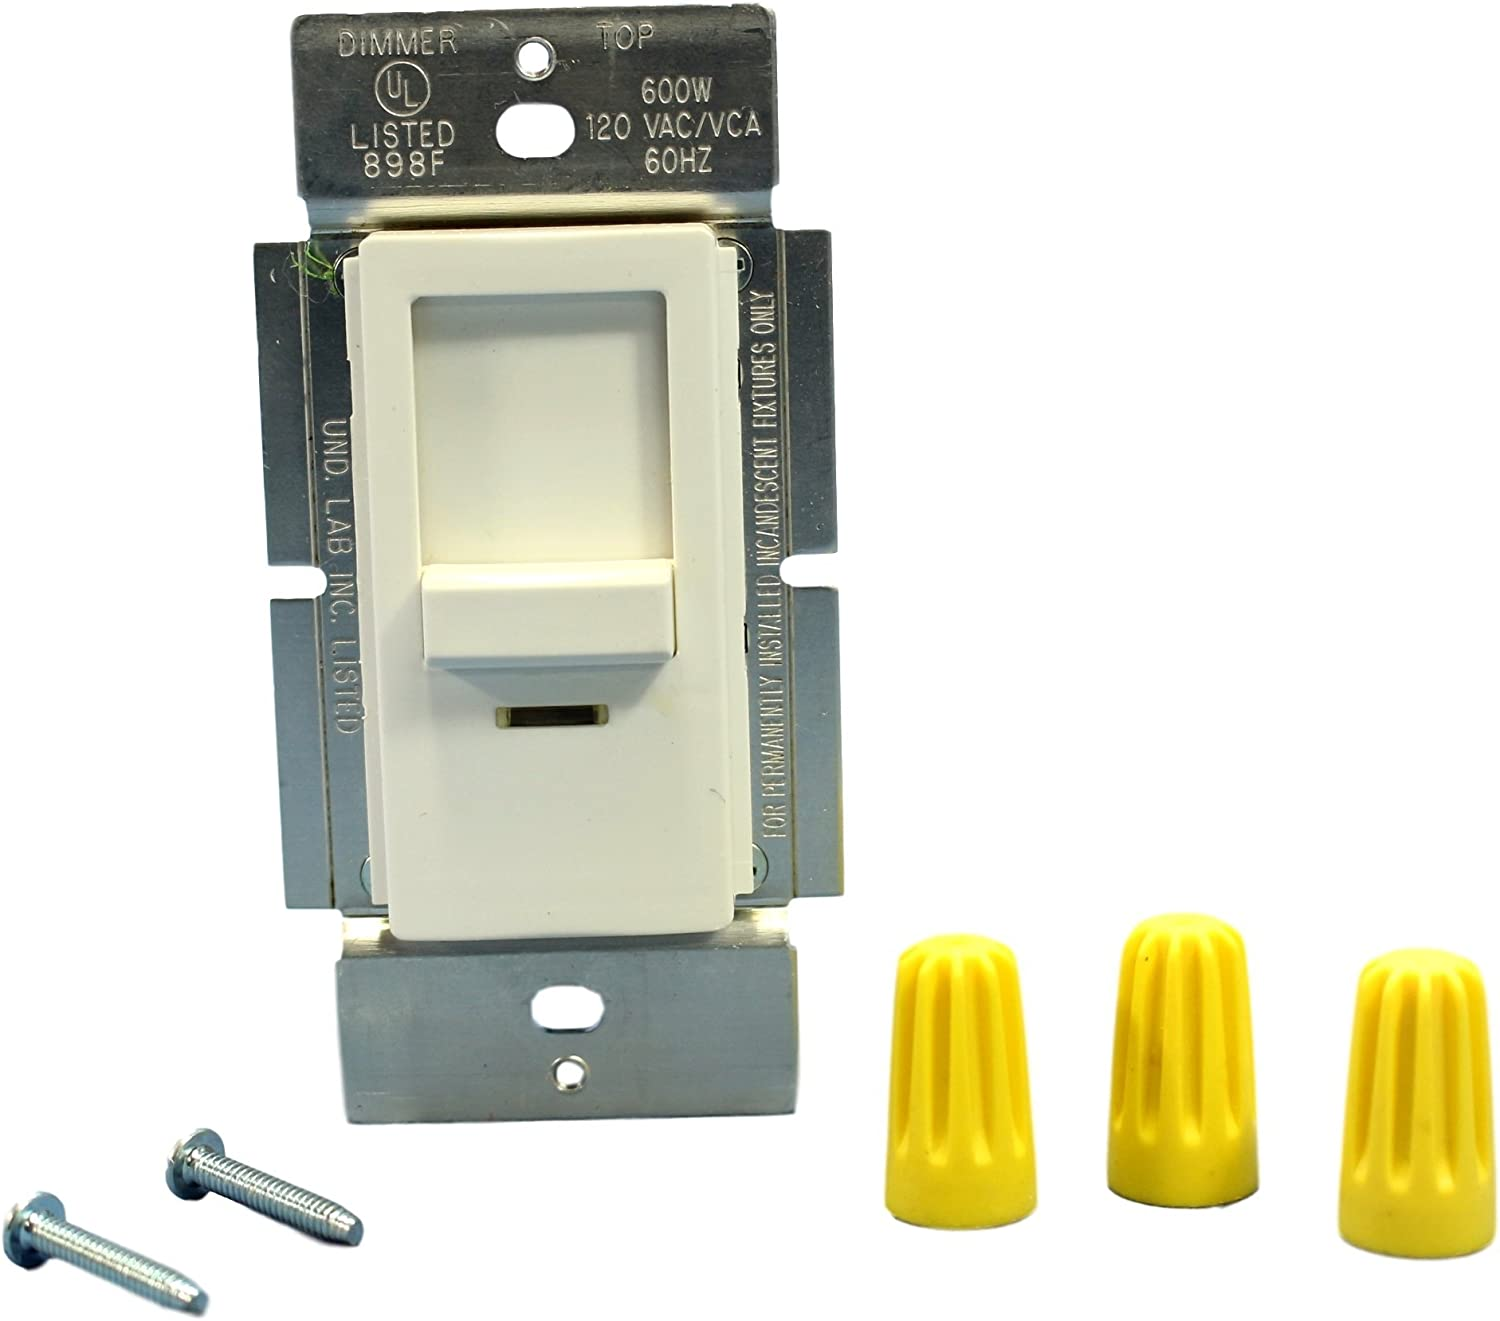 New arrival Leviton INI06-1LW White Decora Commercial Dimmer Slide Lighted Popular shop is the lowest price challenge L